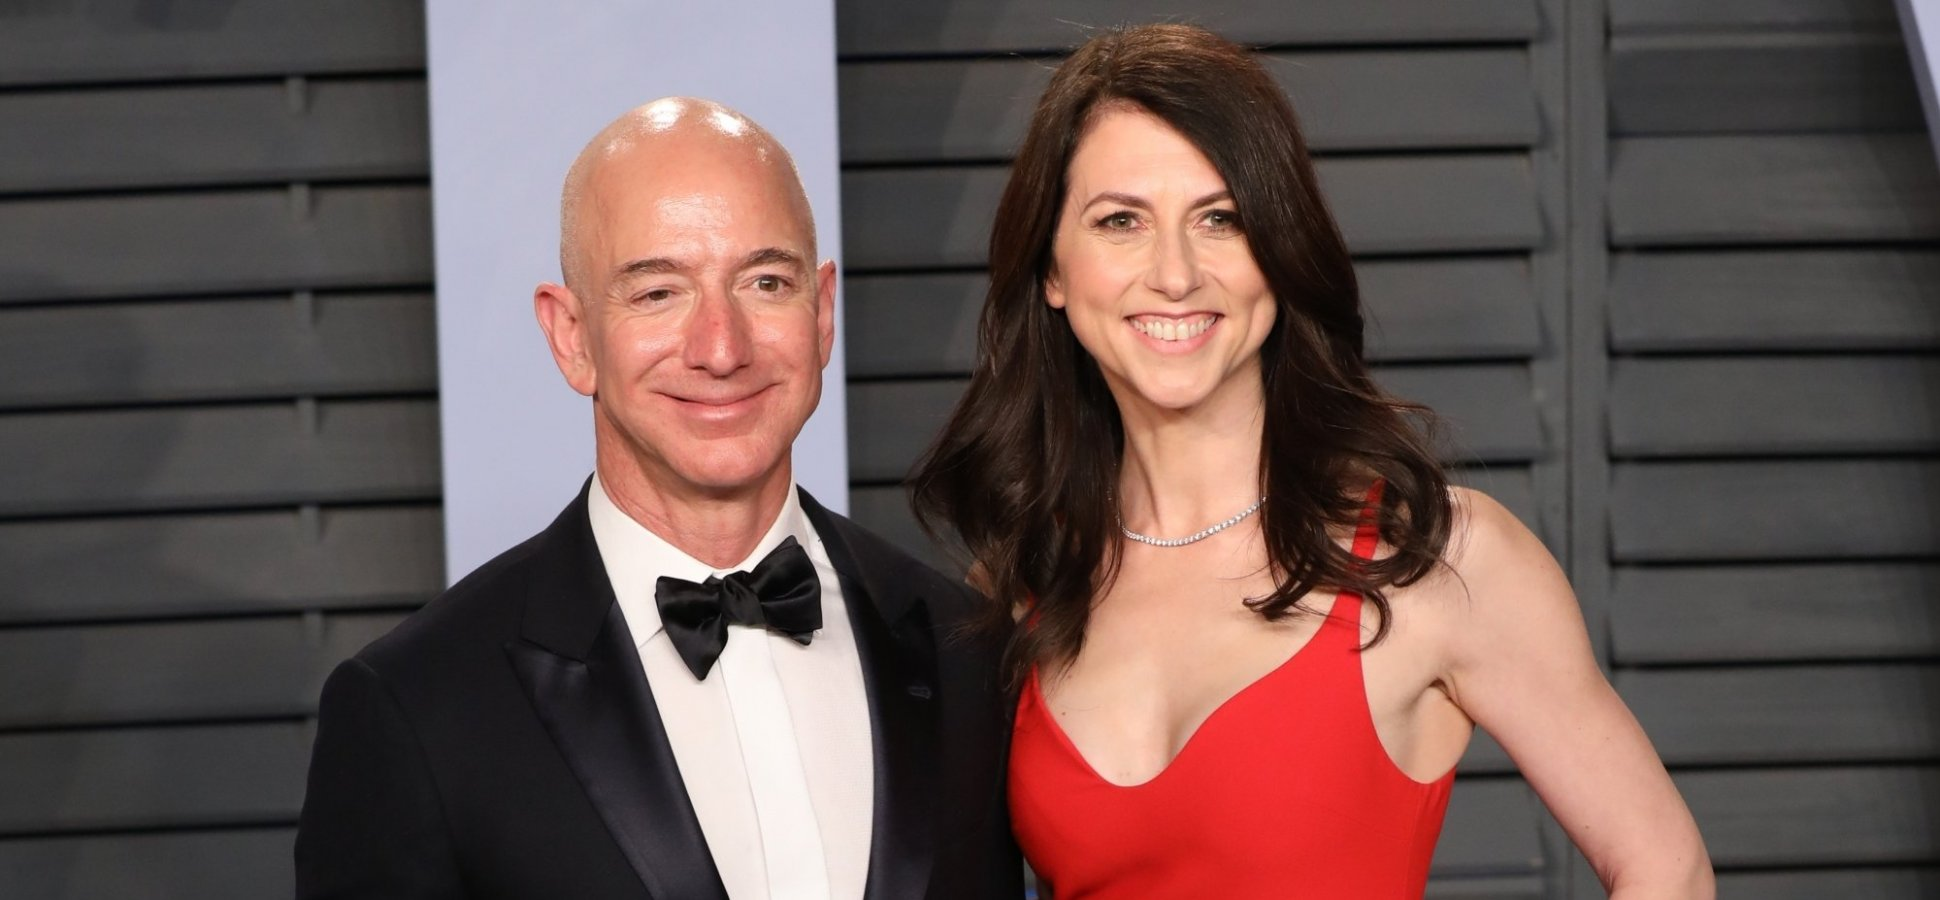 MacKenzie Bezos Wrote an Amazing Letter Promising to Give Away Half Her Fortune